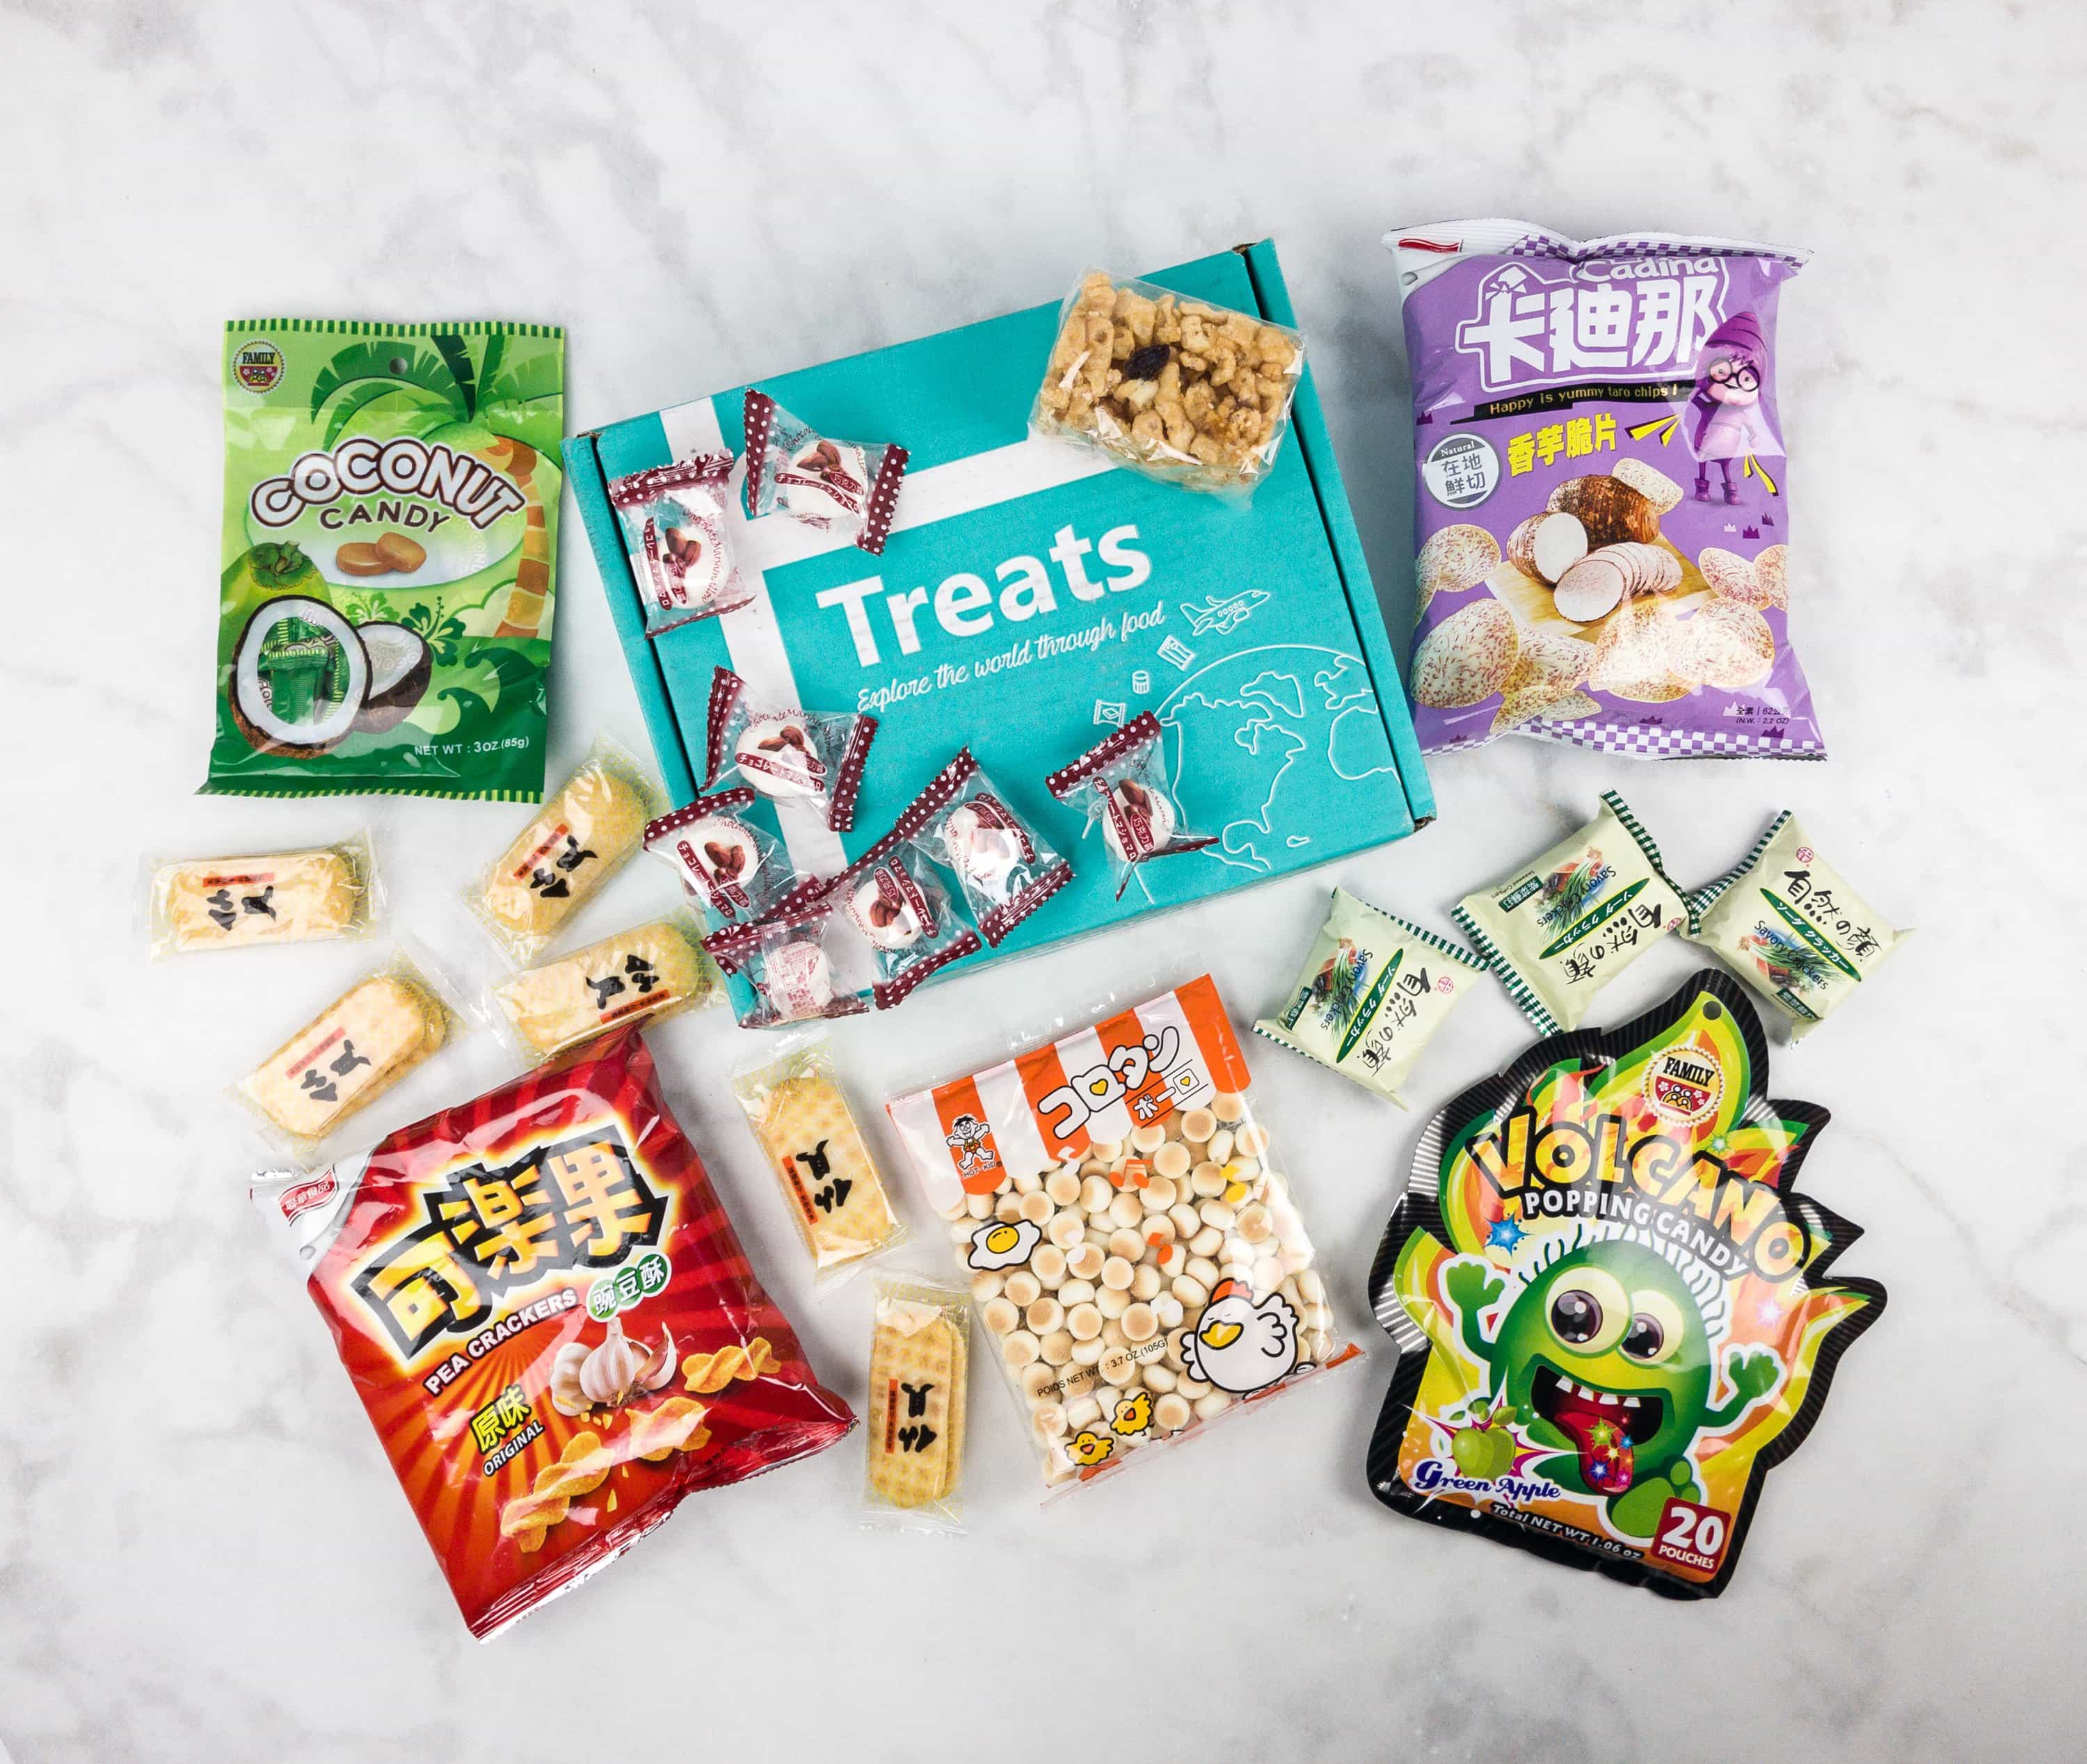 Treats Box August 2017 Review & Coupon – Taiwan!